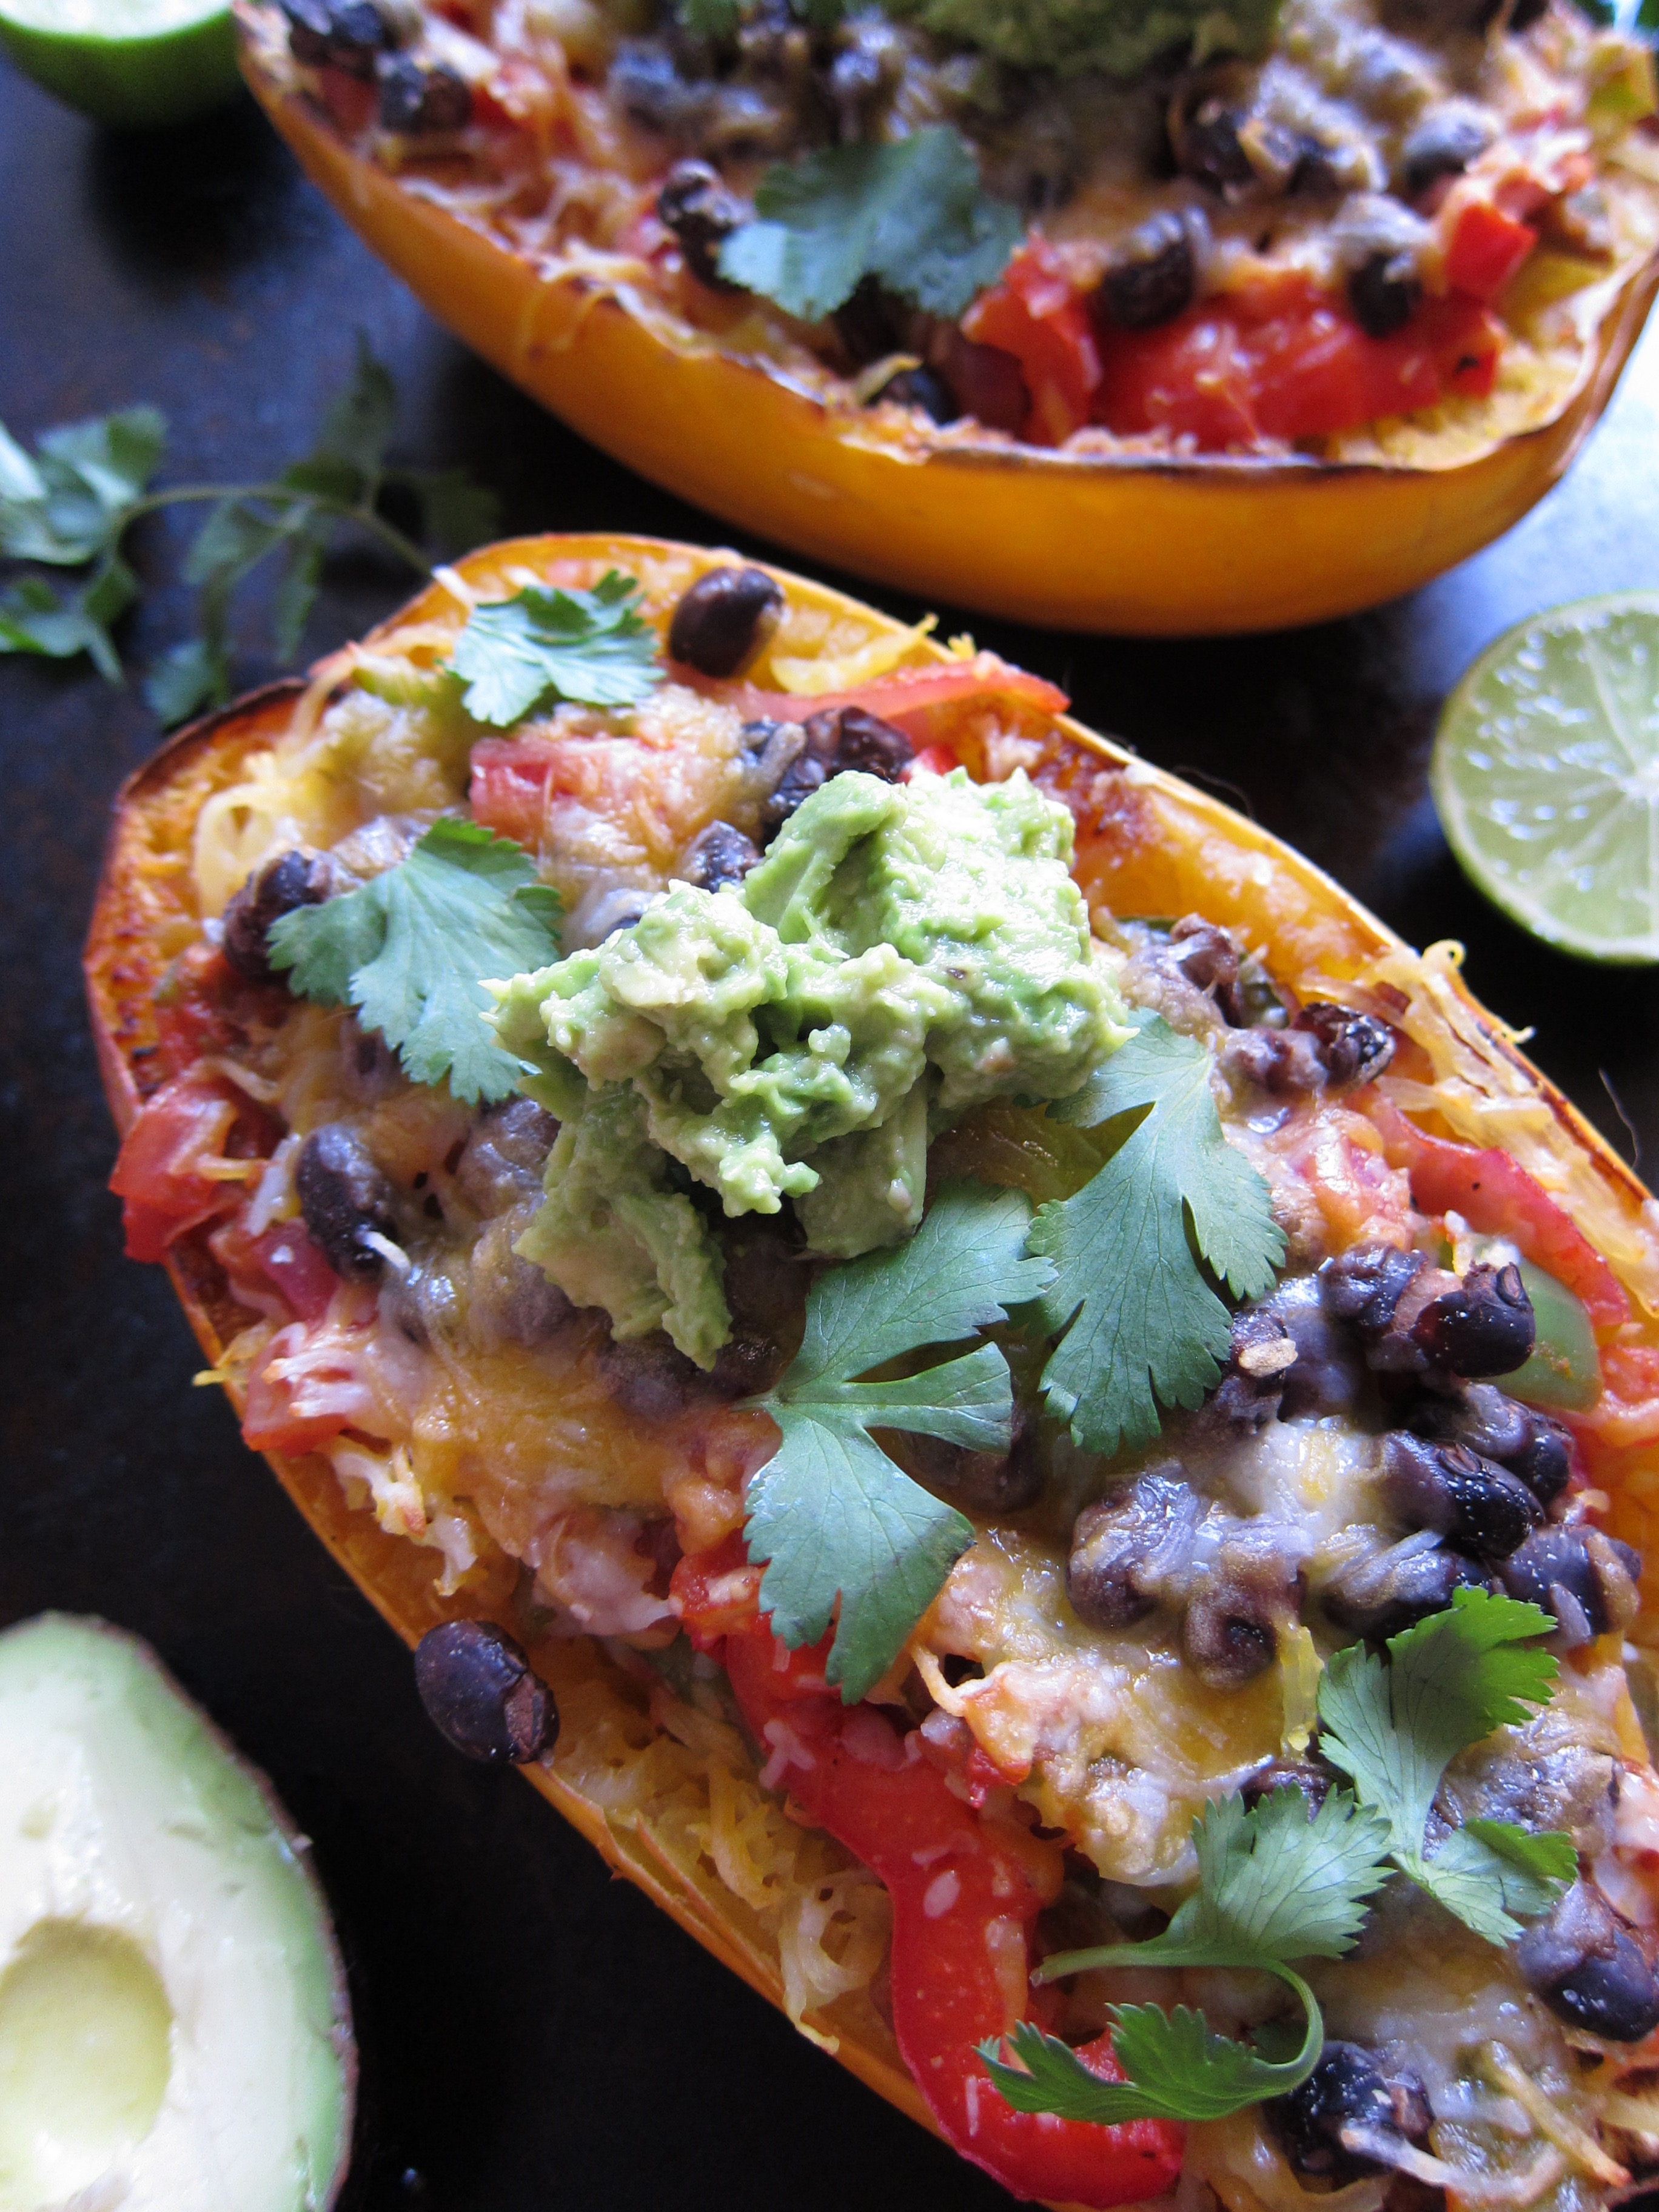 Spaghetti Squash Burrito Bowl is a meatless meal your family will love. This hearty and good-for-you meal is full of green and red peppers, onions and black beans and topped with plenty of cheese and a scoop of guacamole.